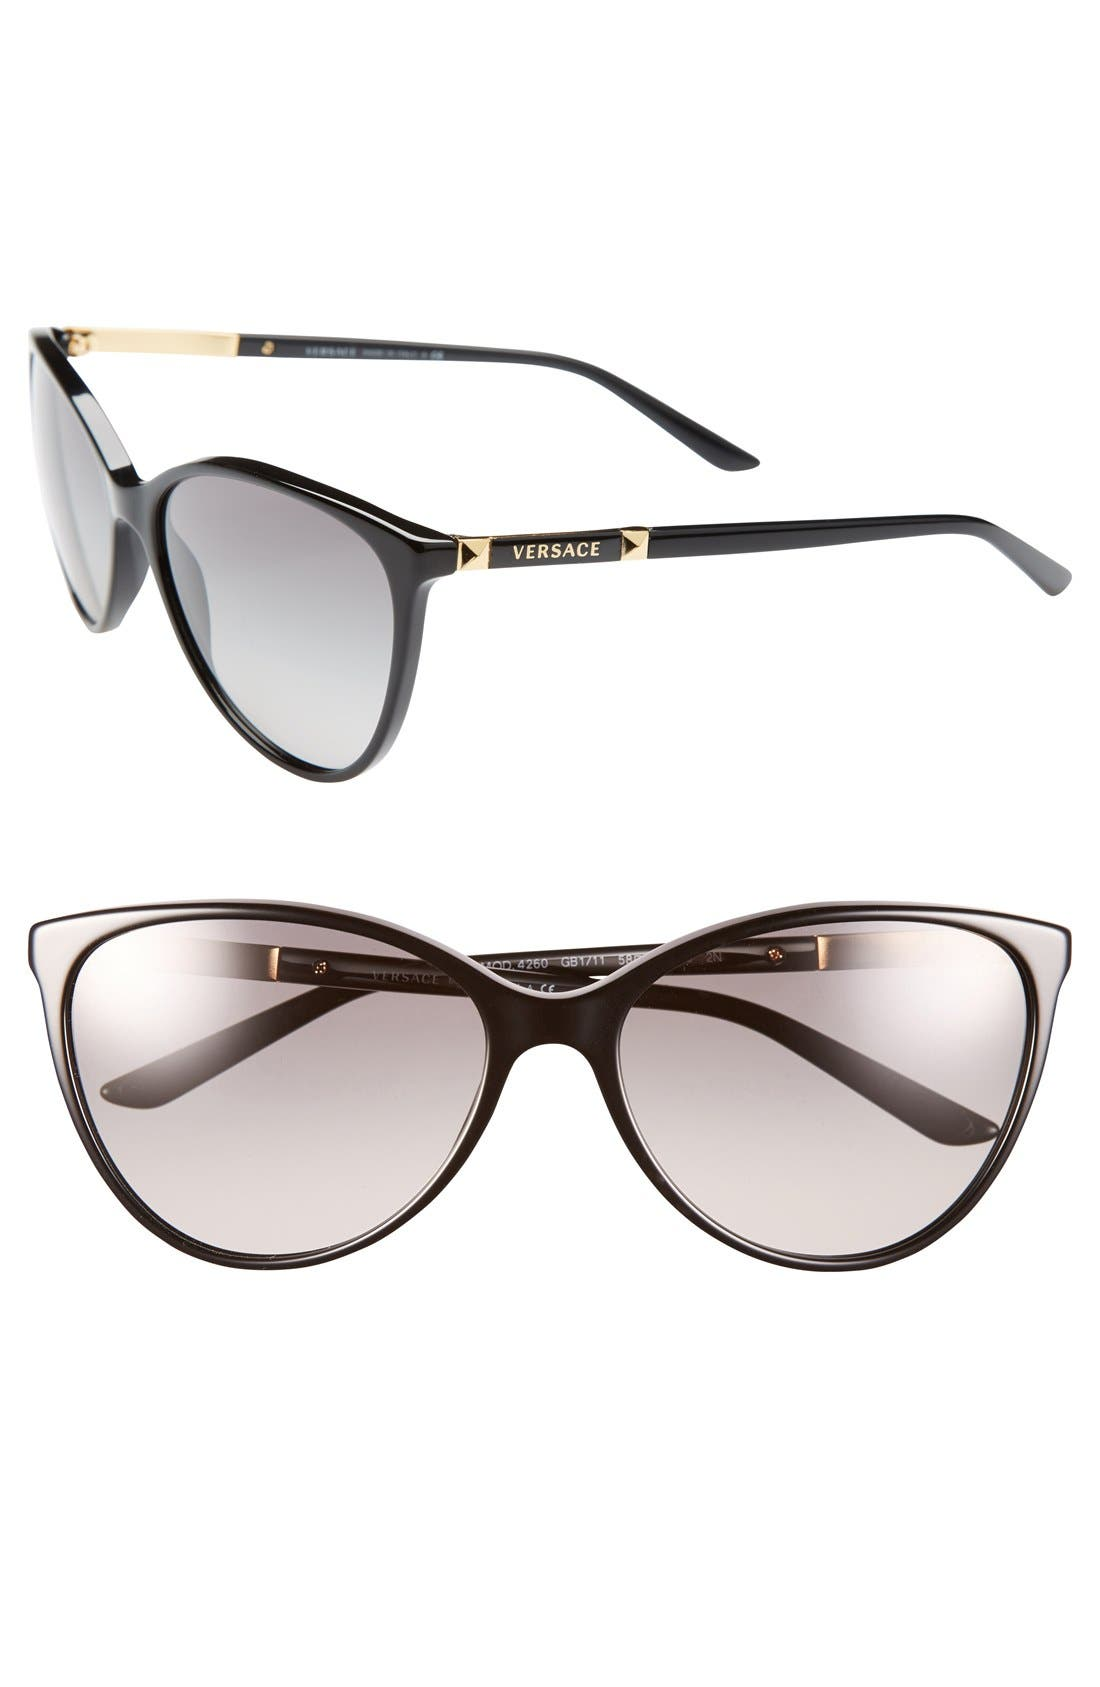 Alternate Image 1 Selected - Versace 'Pilot' 58mm Sunglasses